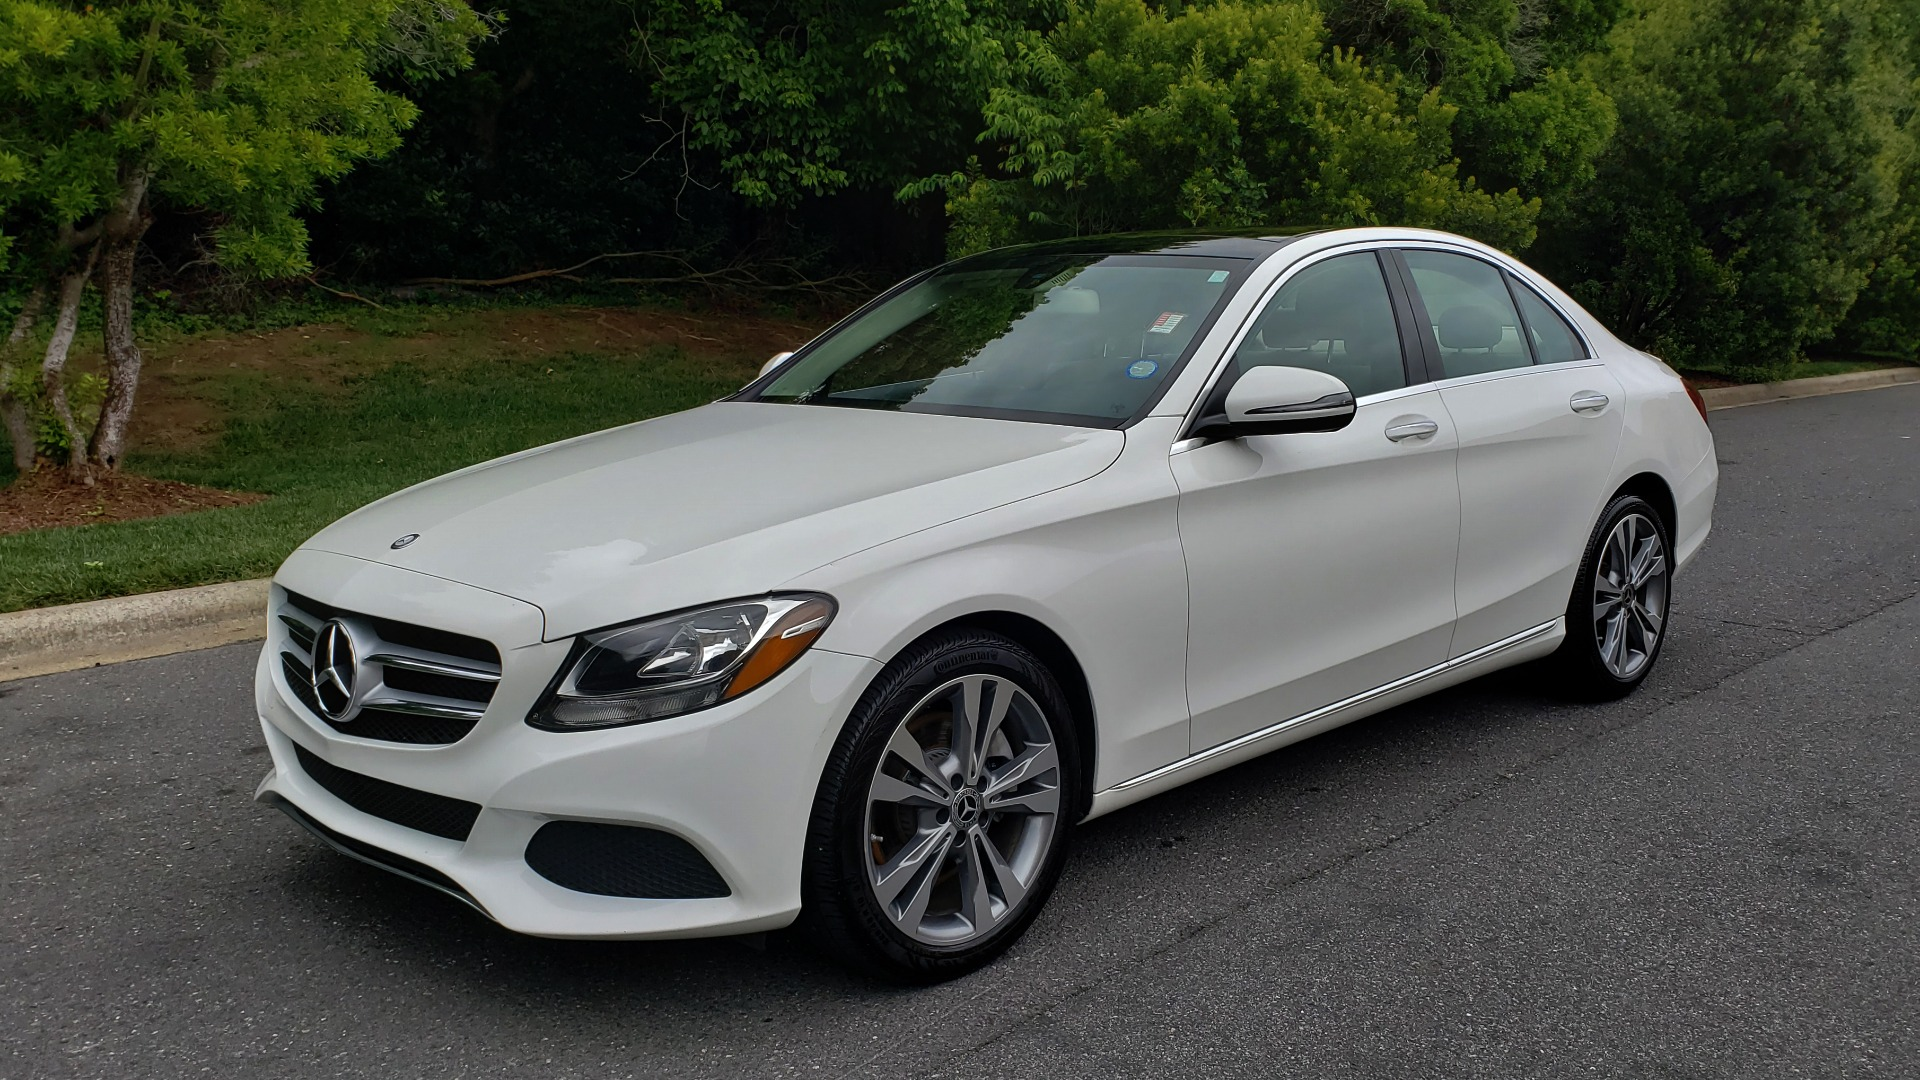 Used 2017 Mercedes-Benz C-CLASS C 300 PREMIUM SEDAN / NAV / PANO-ROOF / HTD STS / REARVIEW for sale Sold at Formula Imports in Charlotte NC 28227 1